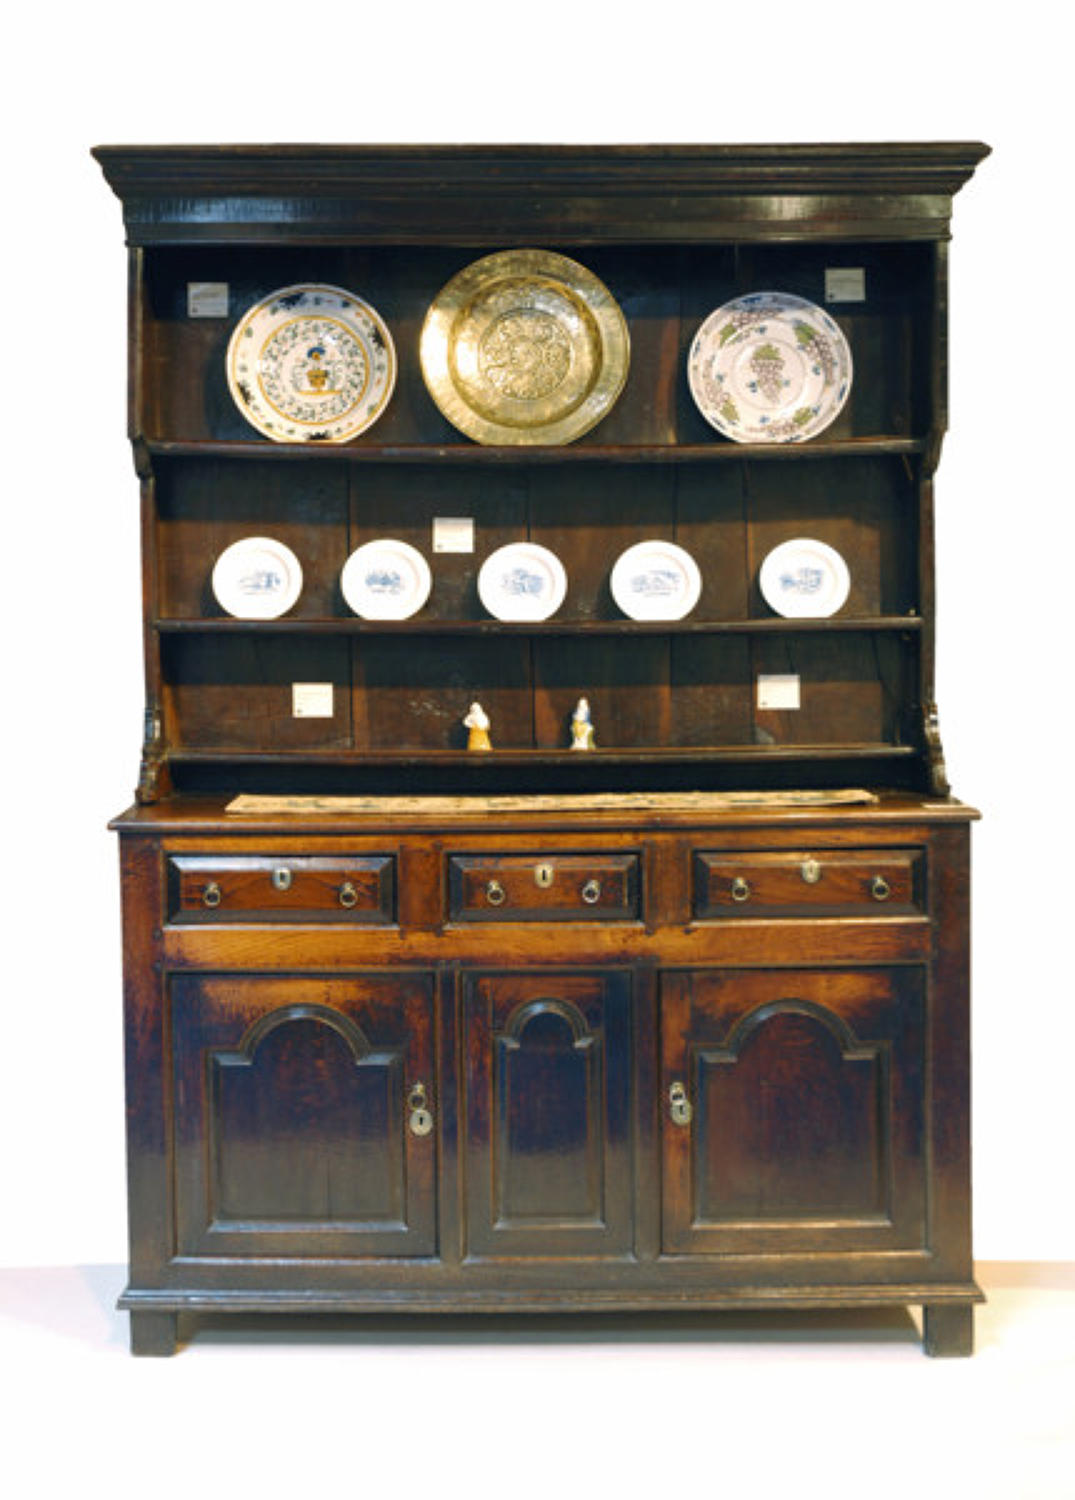 An excellent 18thc Oak Welsh Cupboard Dresser. Welsh C1720 - 30